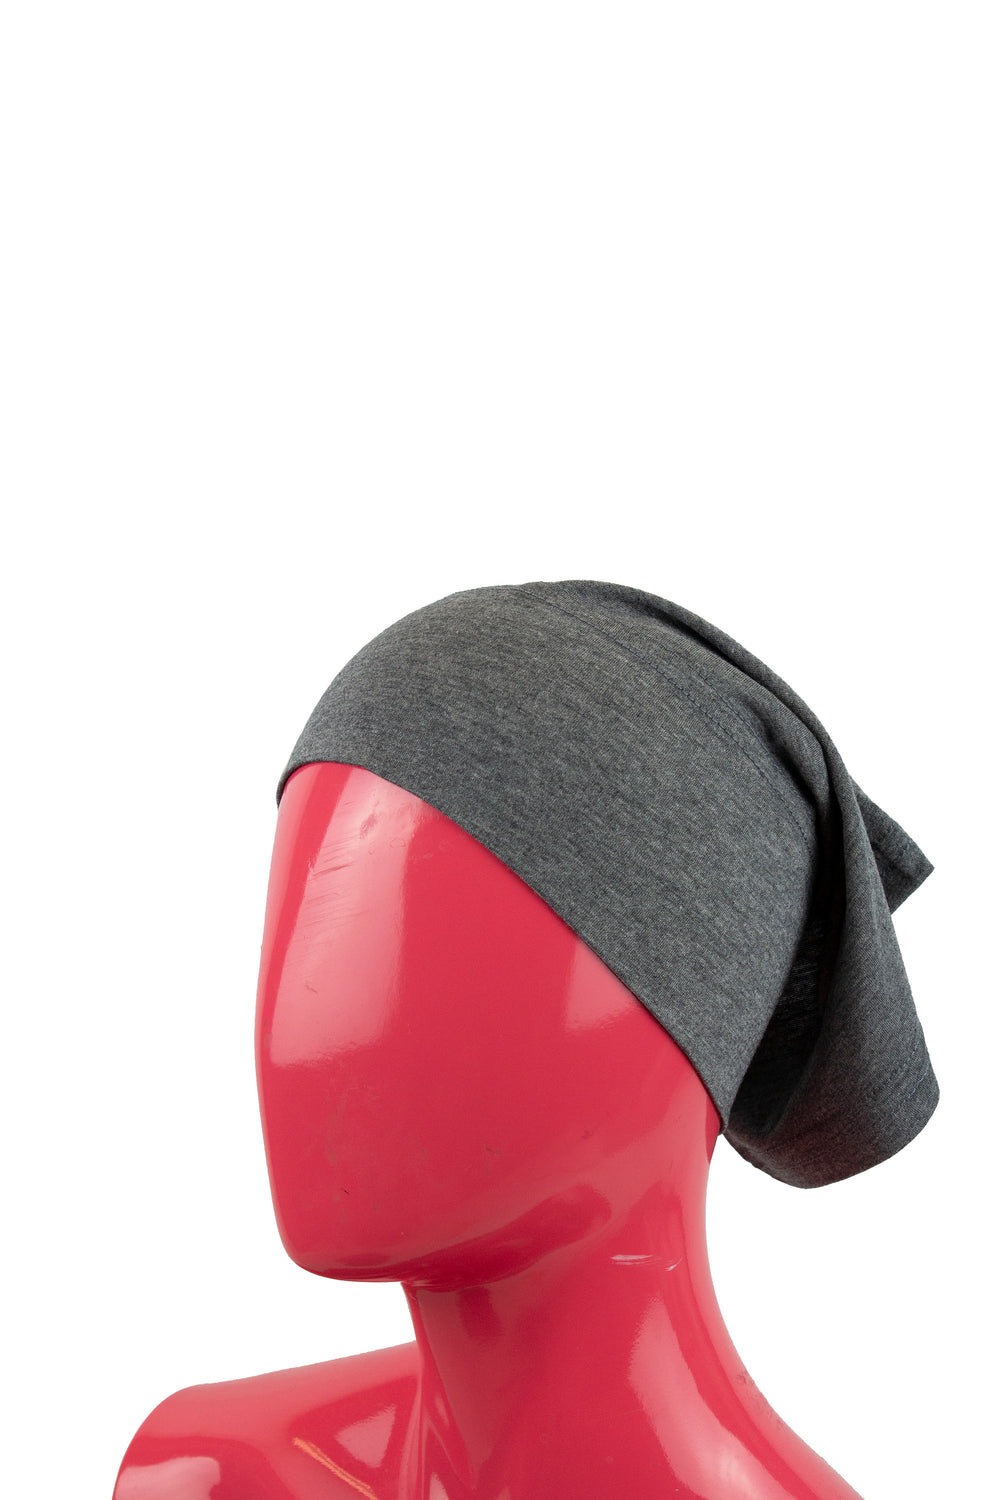 Jersey Under Scarf Tube Cap - Heather Gray